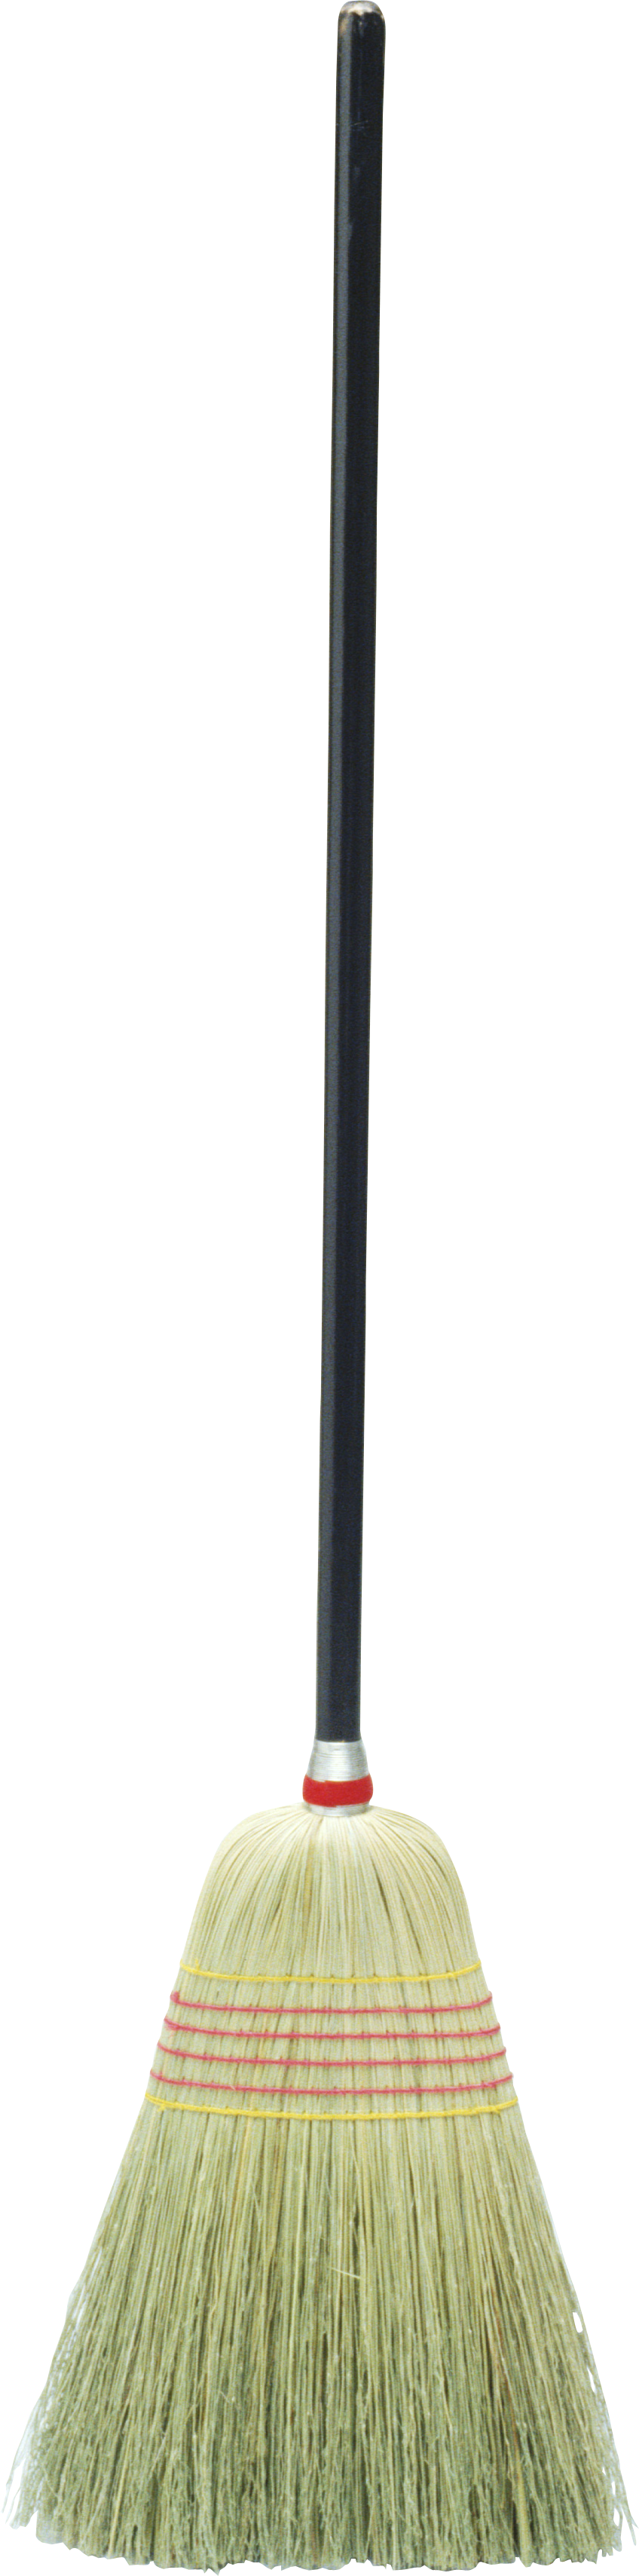 Broom PNG Image